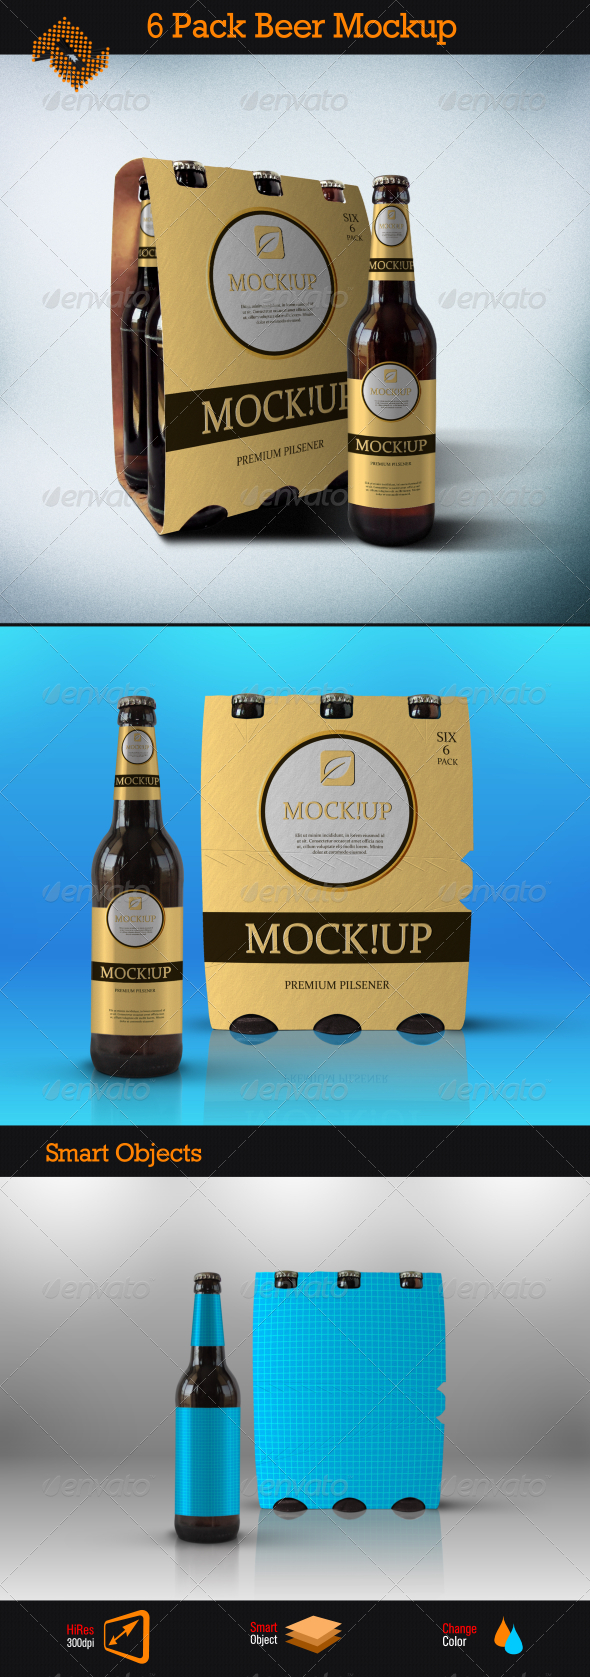 GraphicRiver 6 Pack Beer Mockup 8390108